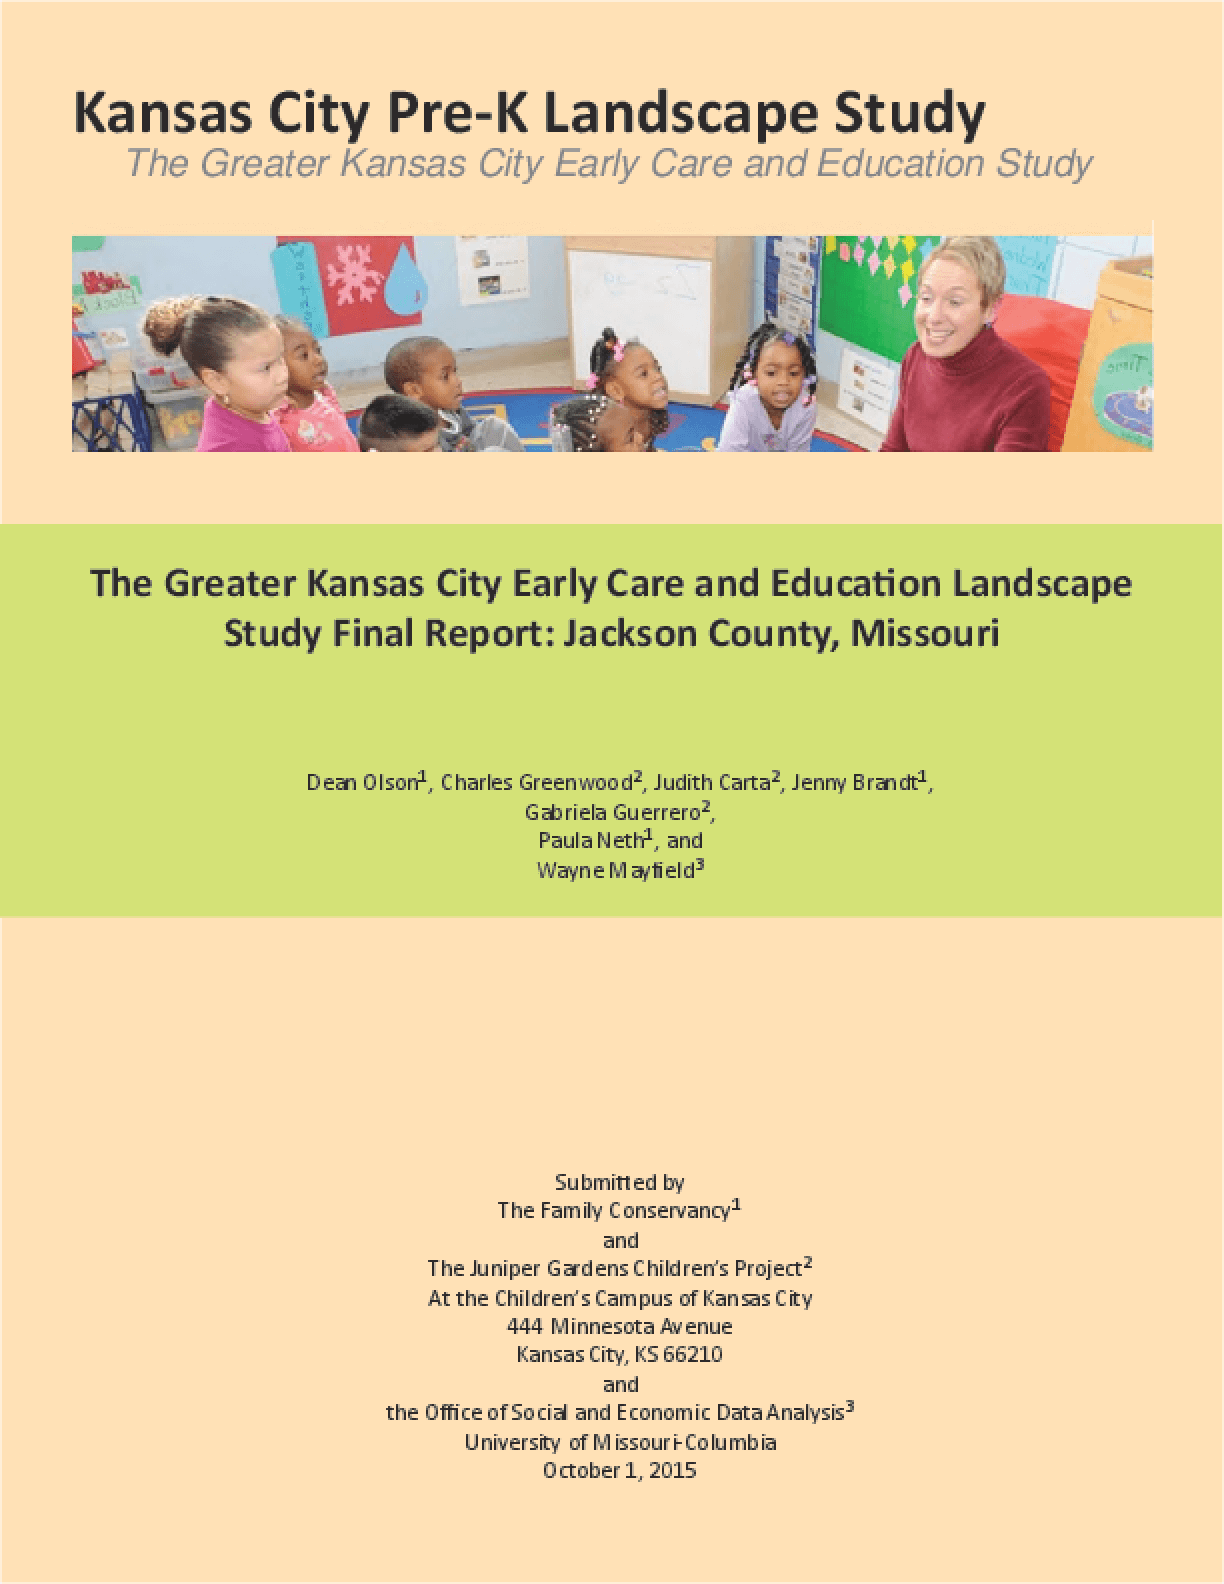 The Greater Kansas City Early Care and Education Landscape Study Final Report: Jackson County, Missouri